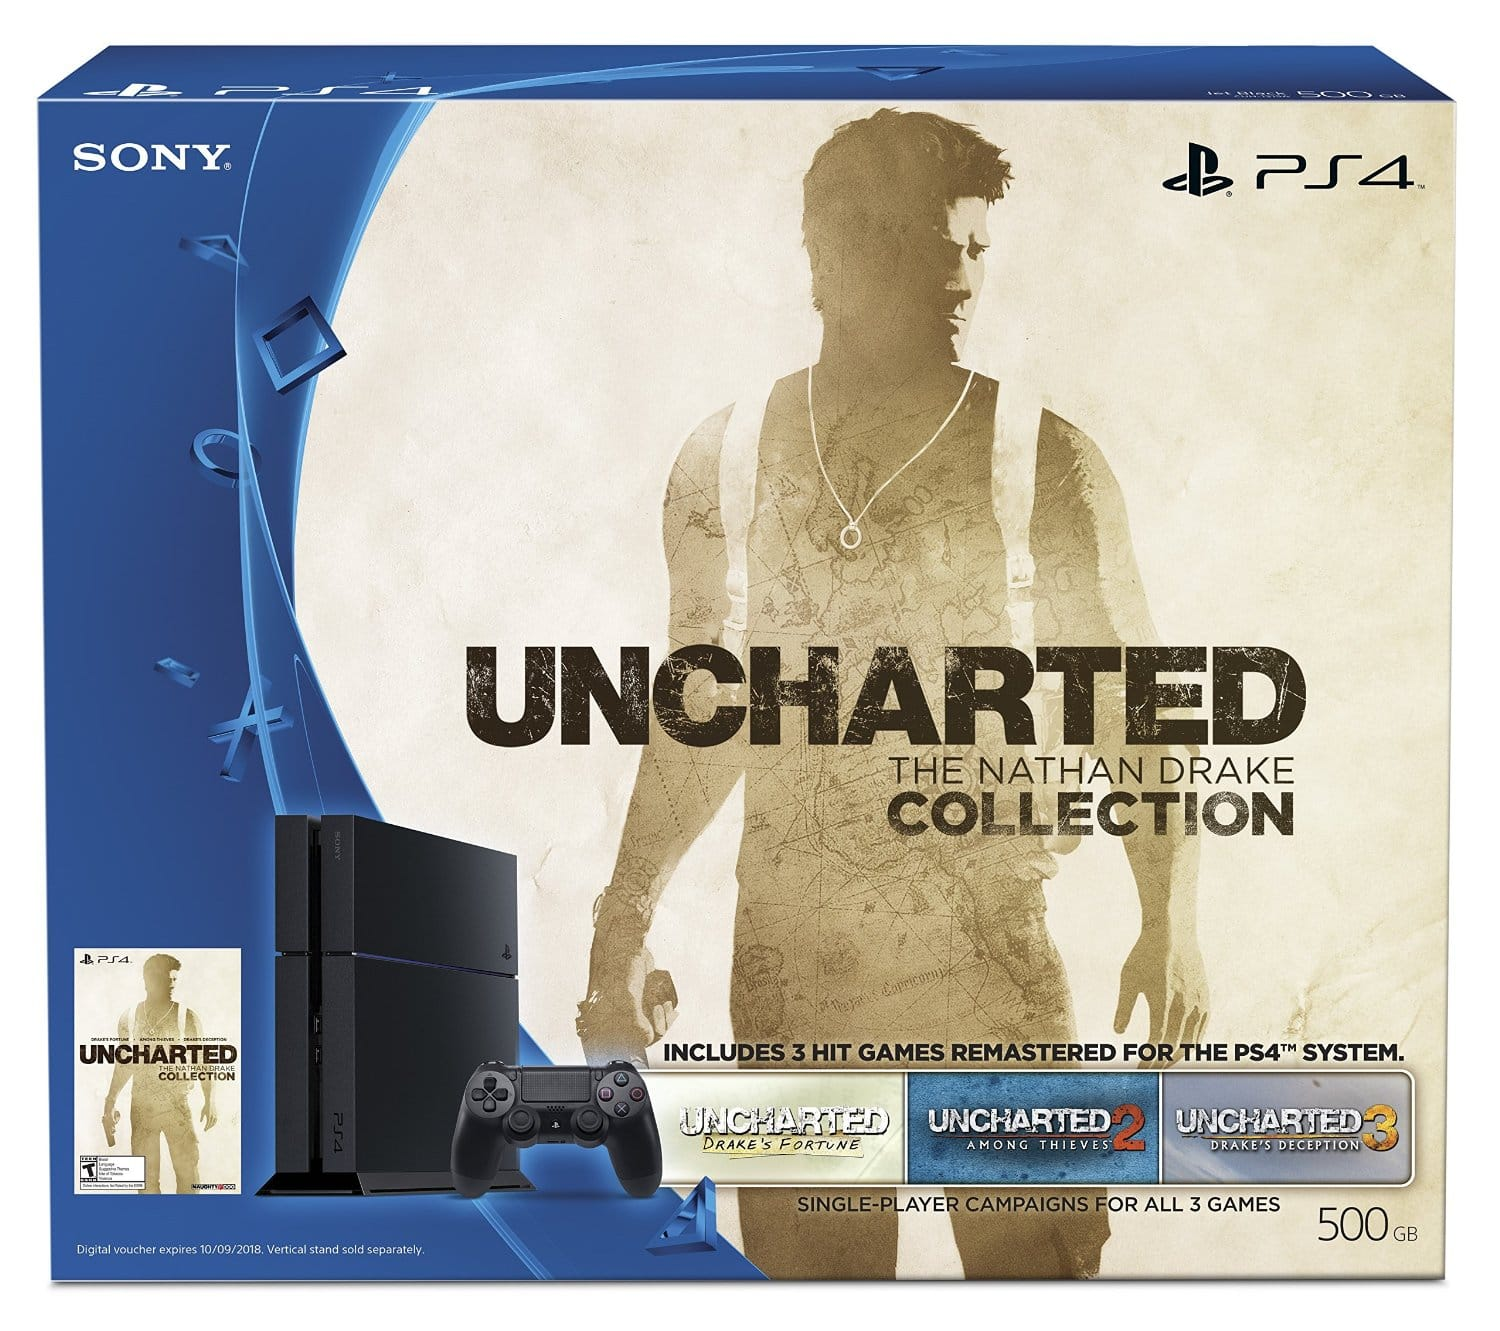 Playstation 4 Uncharted Bundle + Fallout 4 + Charging Station  $350 + Free Shipping